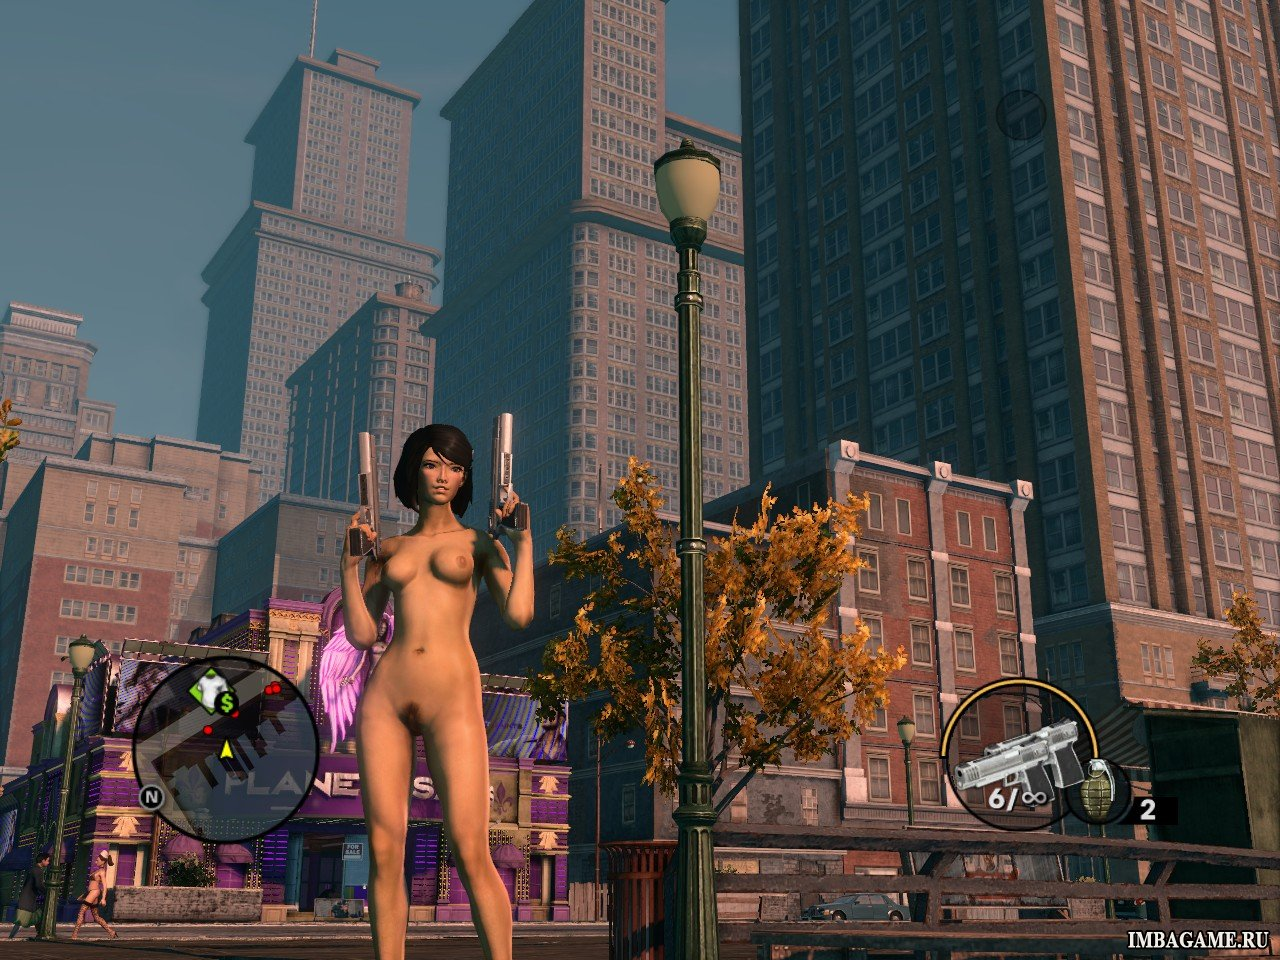 Saints row 3 porn patch erotic galleries